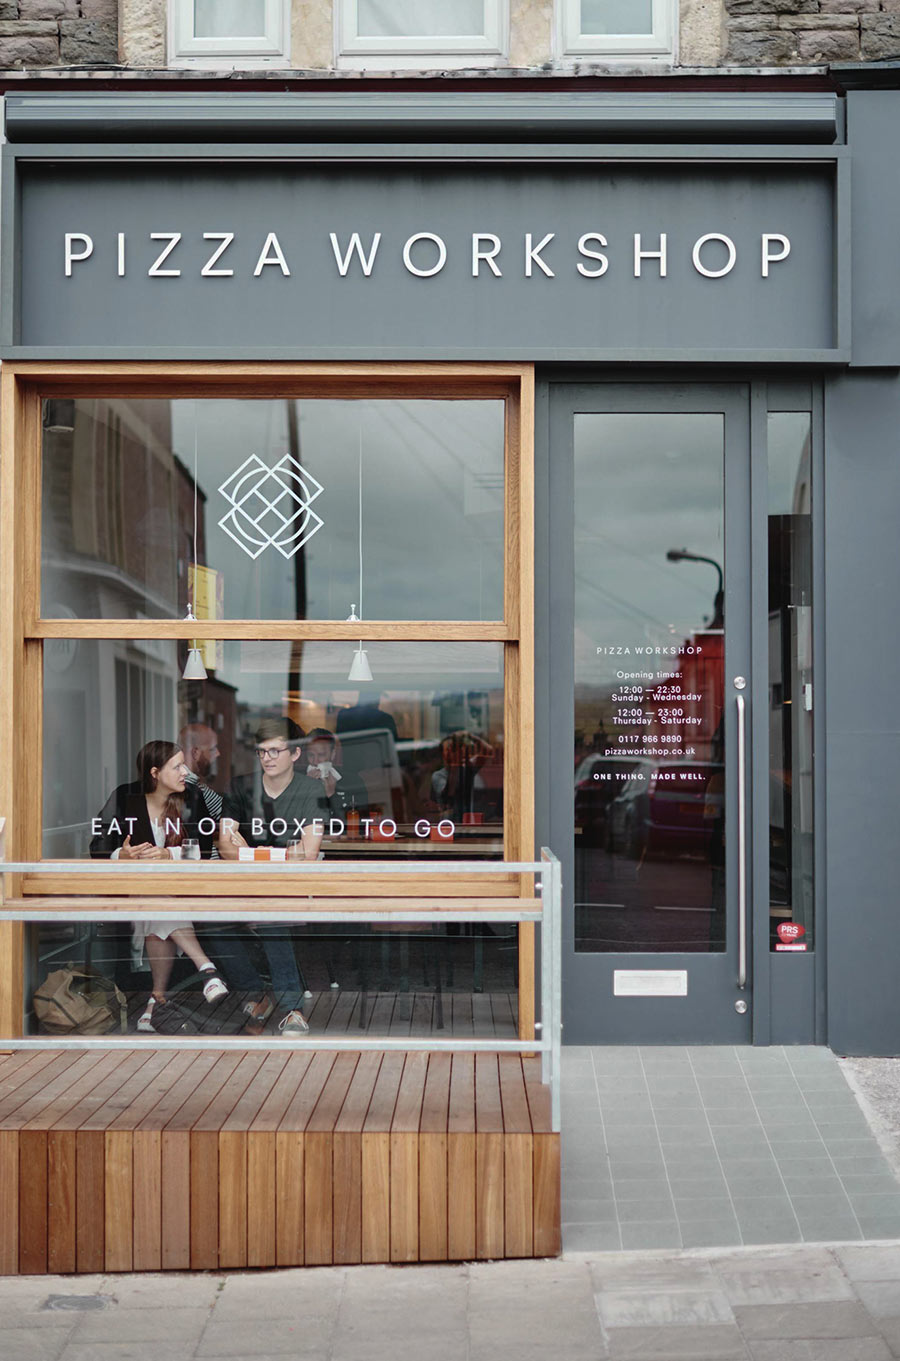 Pizza Workshop identity